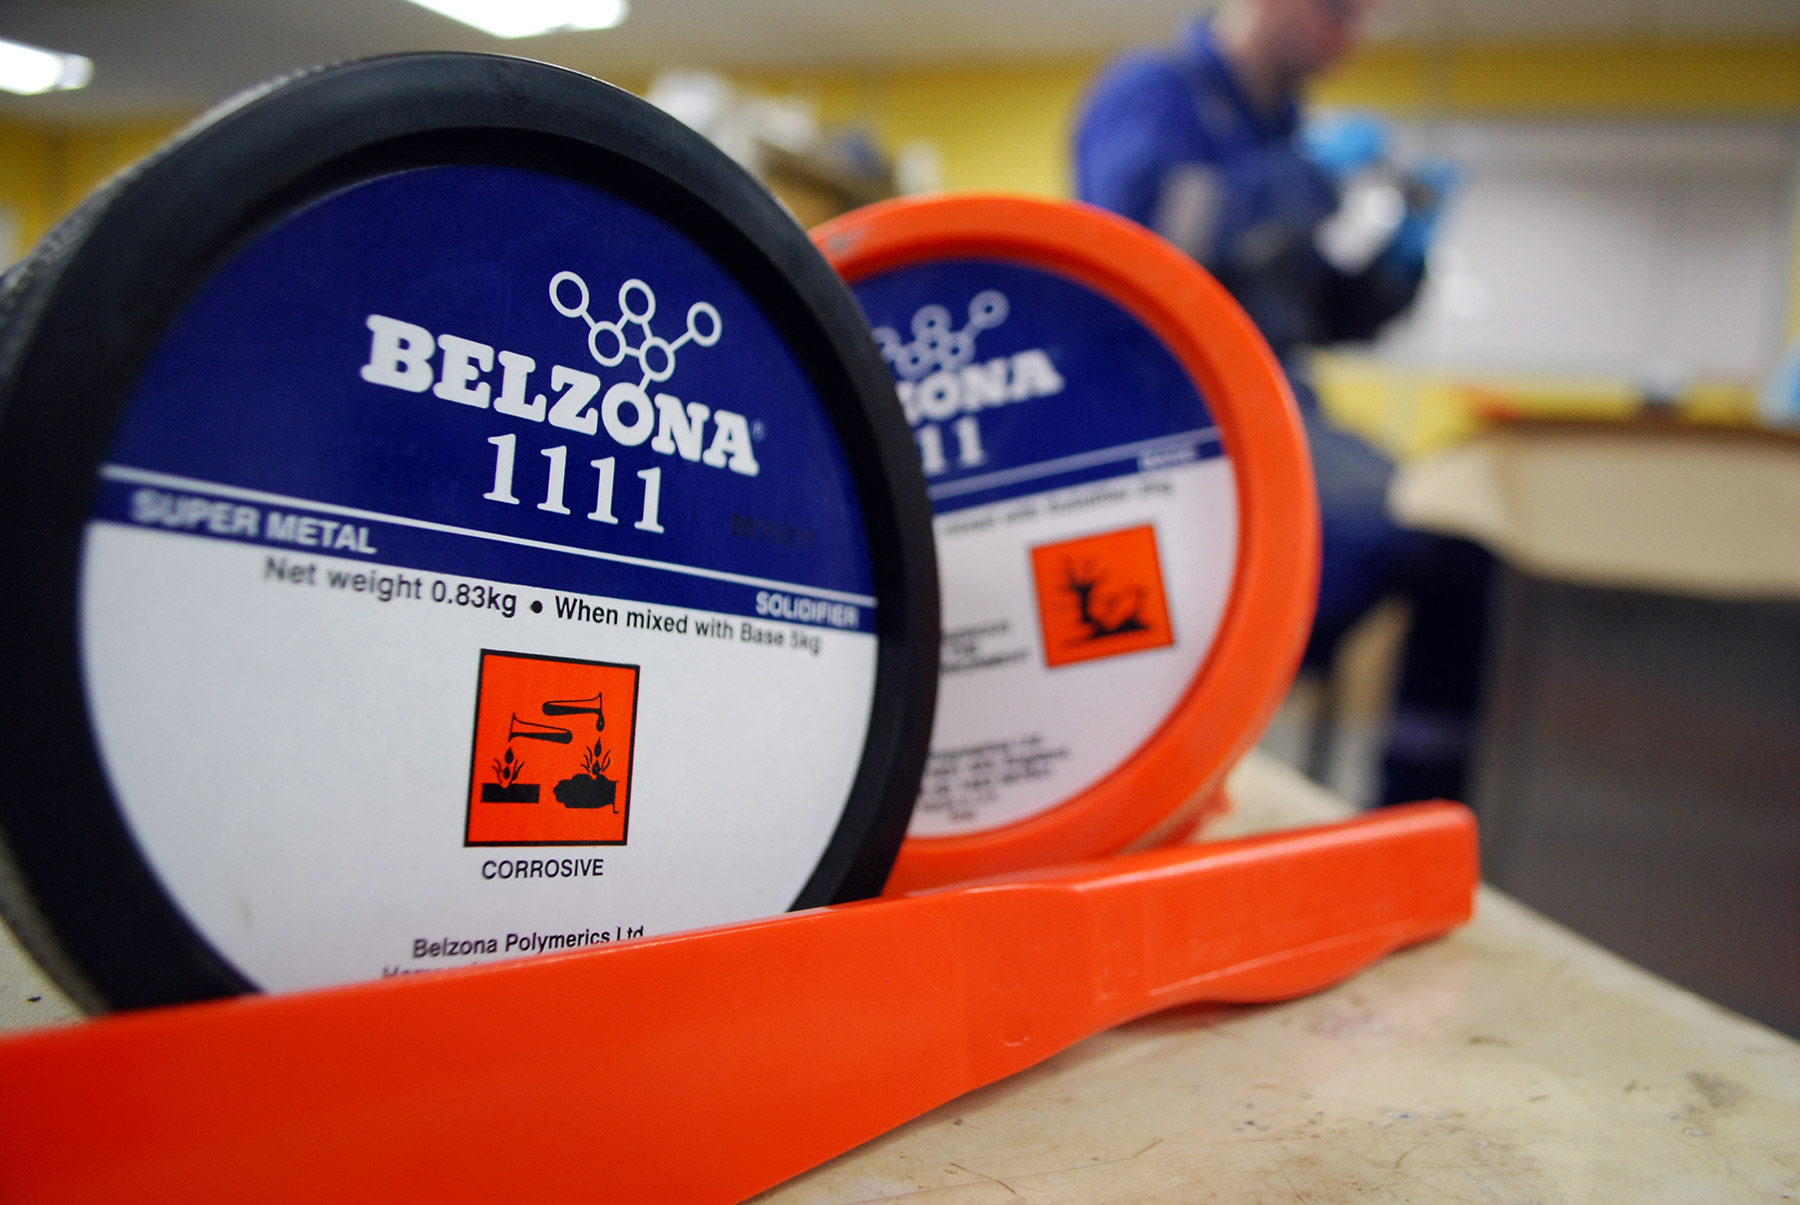 belzona 1321 instructions for use